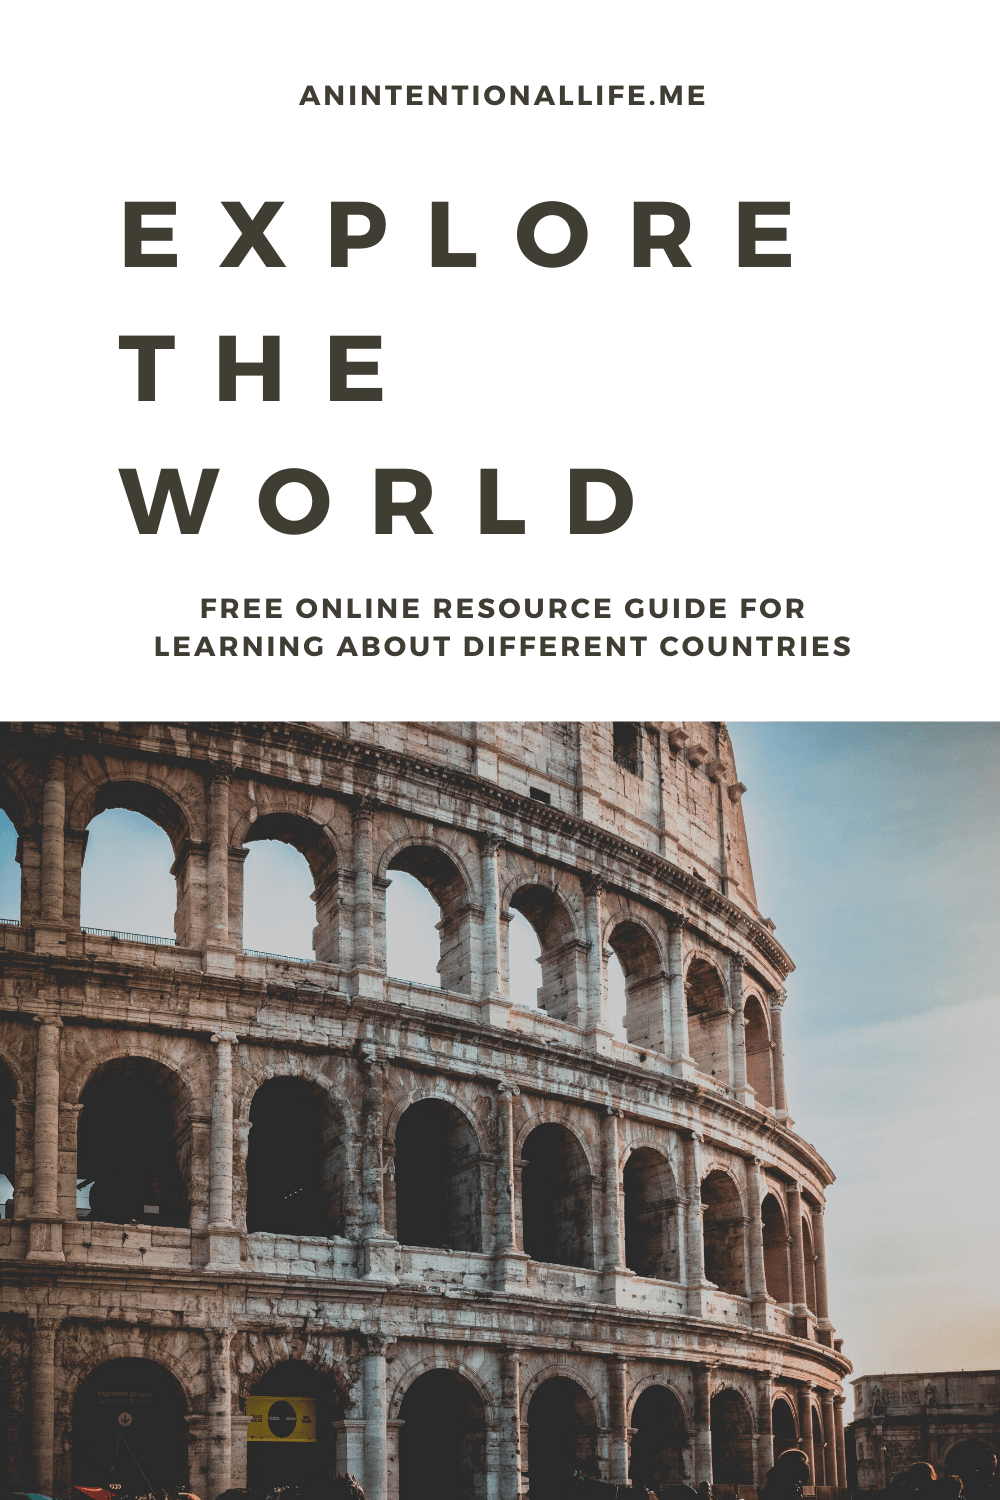 Explore the World - A Free Online Digital Resource Guide to learn about different countries around the world